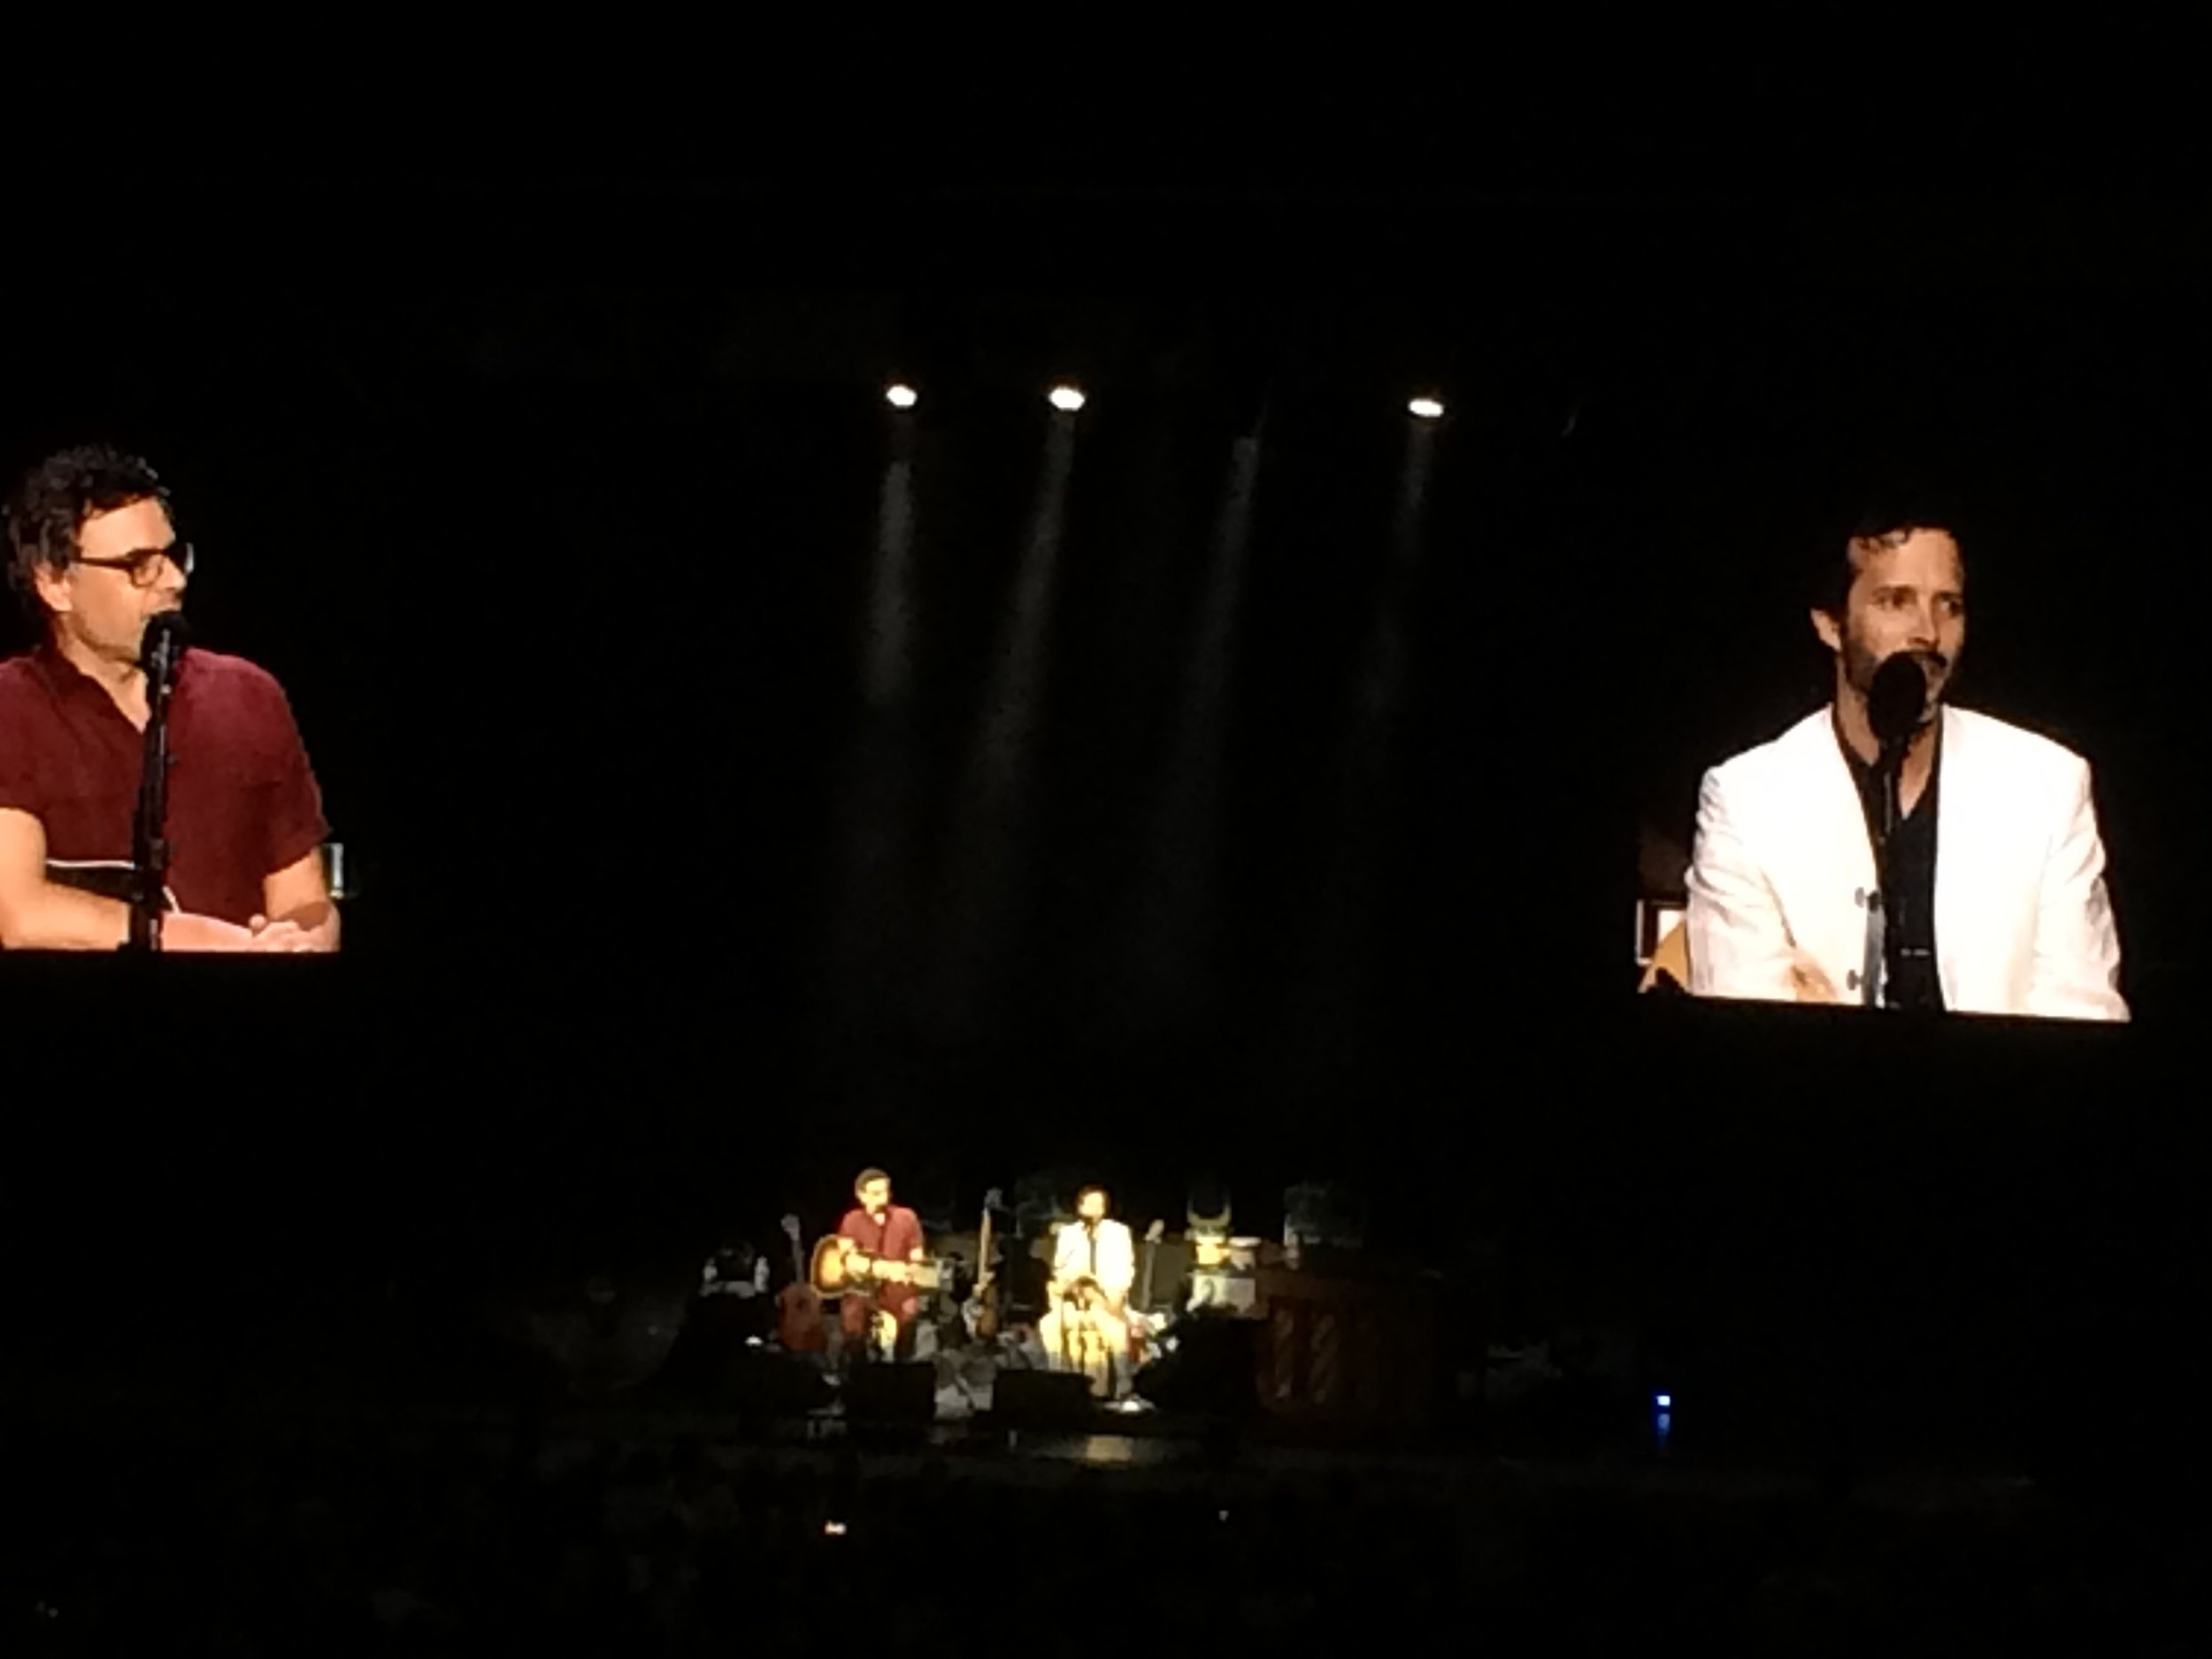 Bret and Jermaine, The Flight of the Conchords live at the Greek Theater in Los Angeles in July 2016